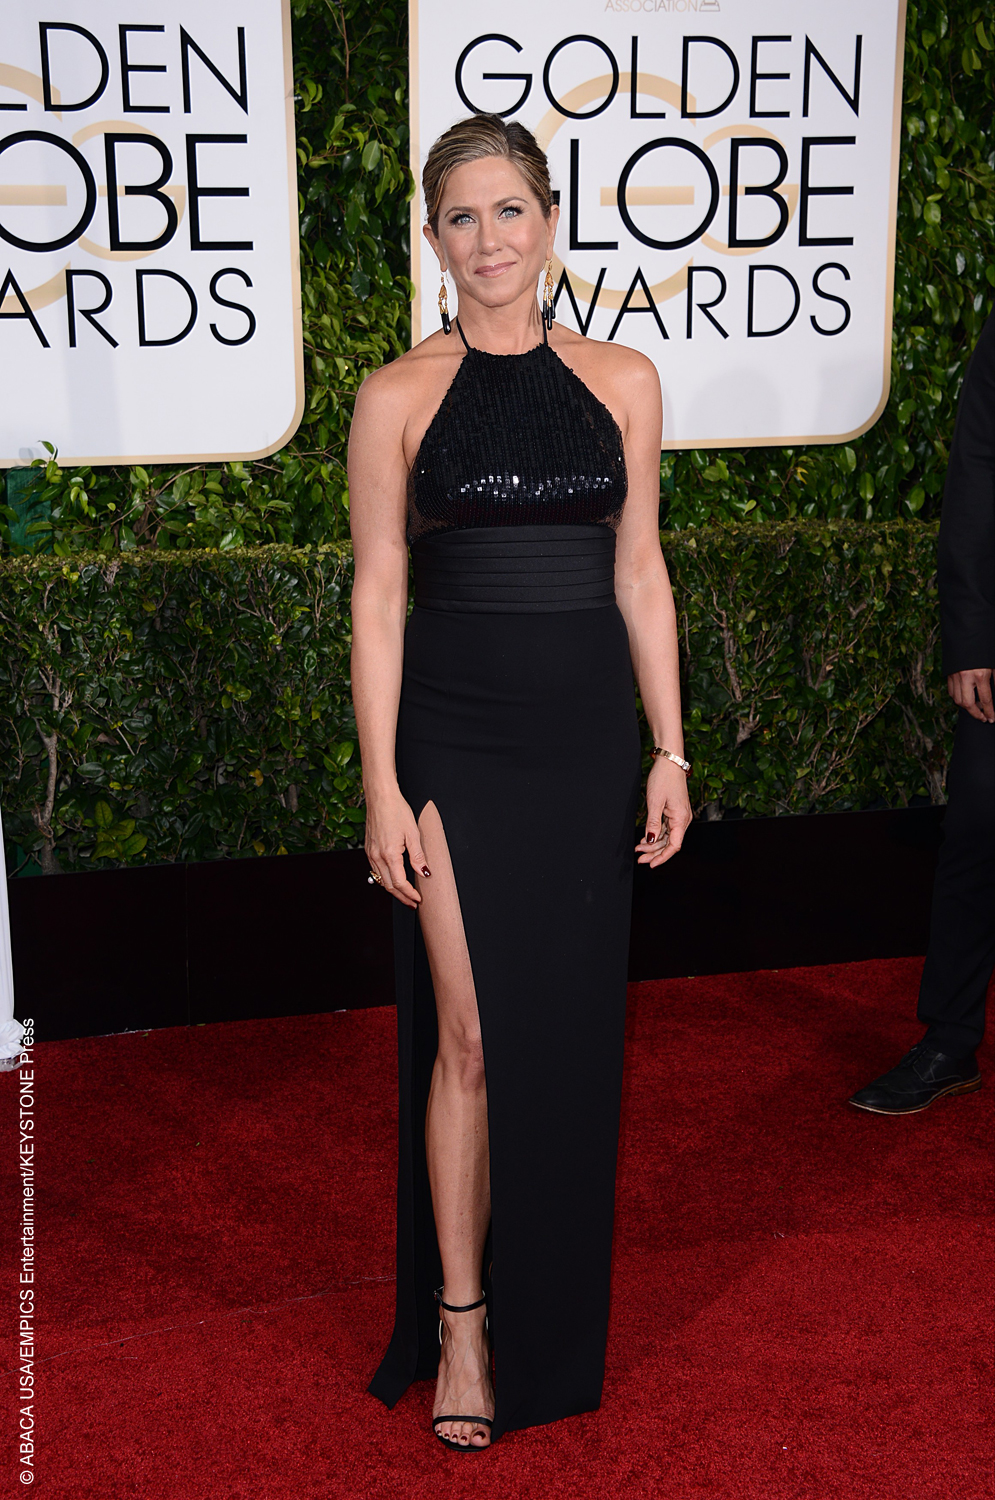 She may not have won Best Actress in the Motion Picture – Drama category for her amazing performance in Cake, but Jennifer Aniston wowed on the red carpet in a black, backless Saint Laurent gown with a long slit. Her jewelry was by Neil Lane and she wore her hair elegantly swept up. An all-around […]